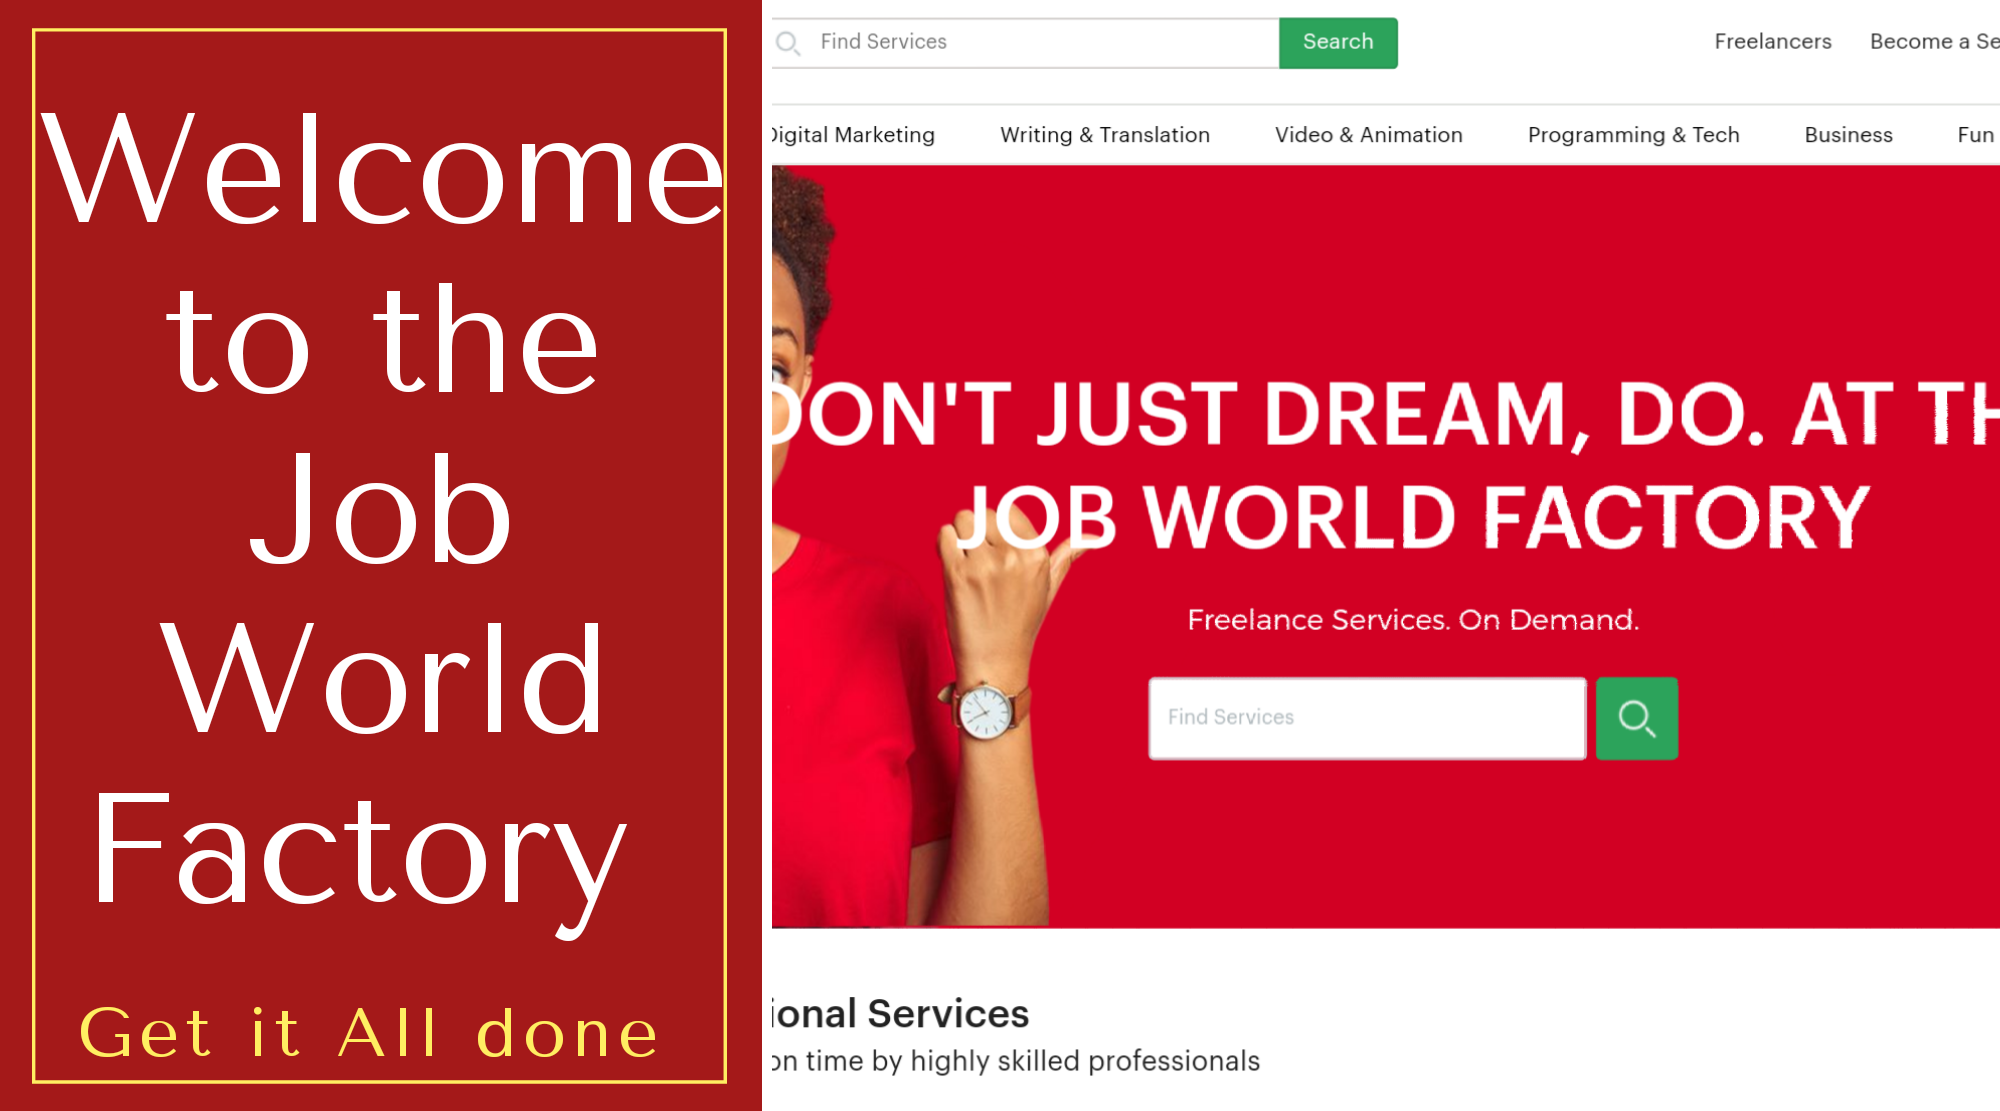 Job World Factory – Freelance Division Launches Multi Million Pound Campaign